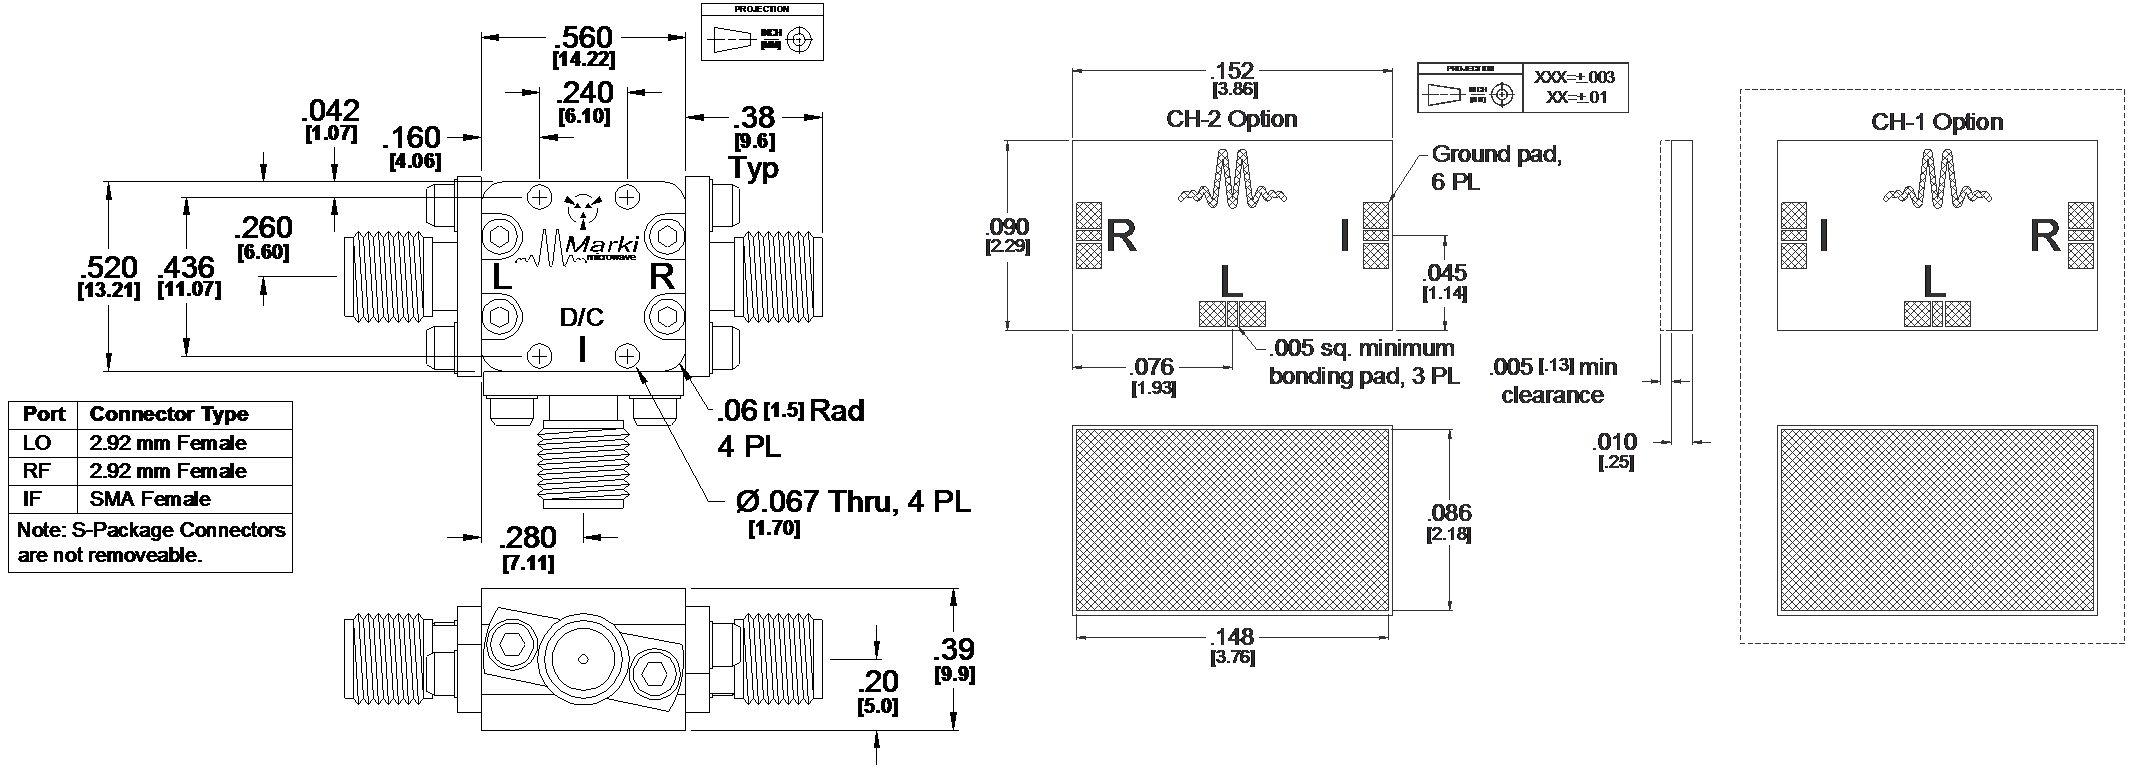 ML1-0936 Mixer Package Diagram